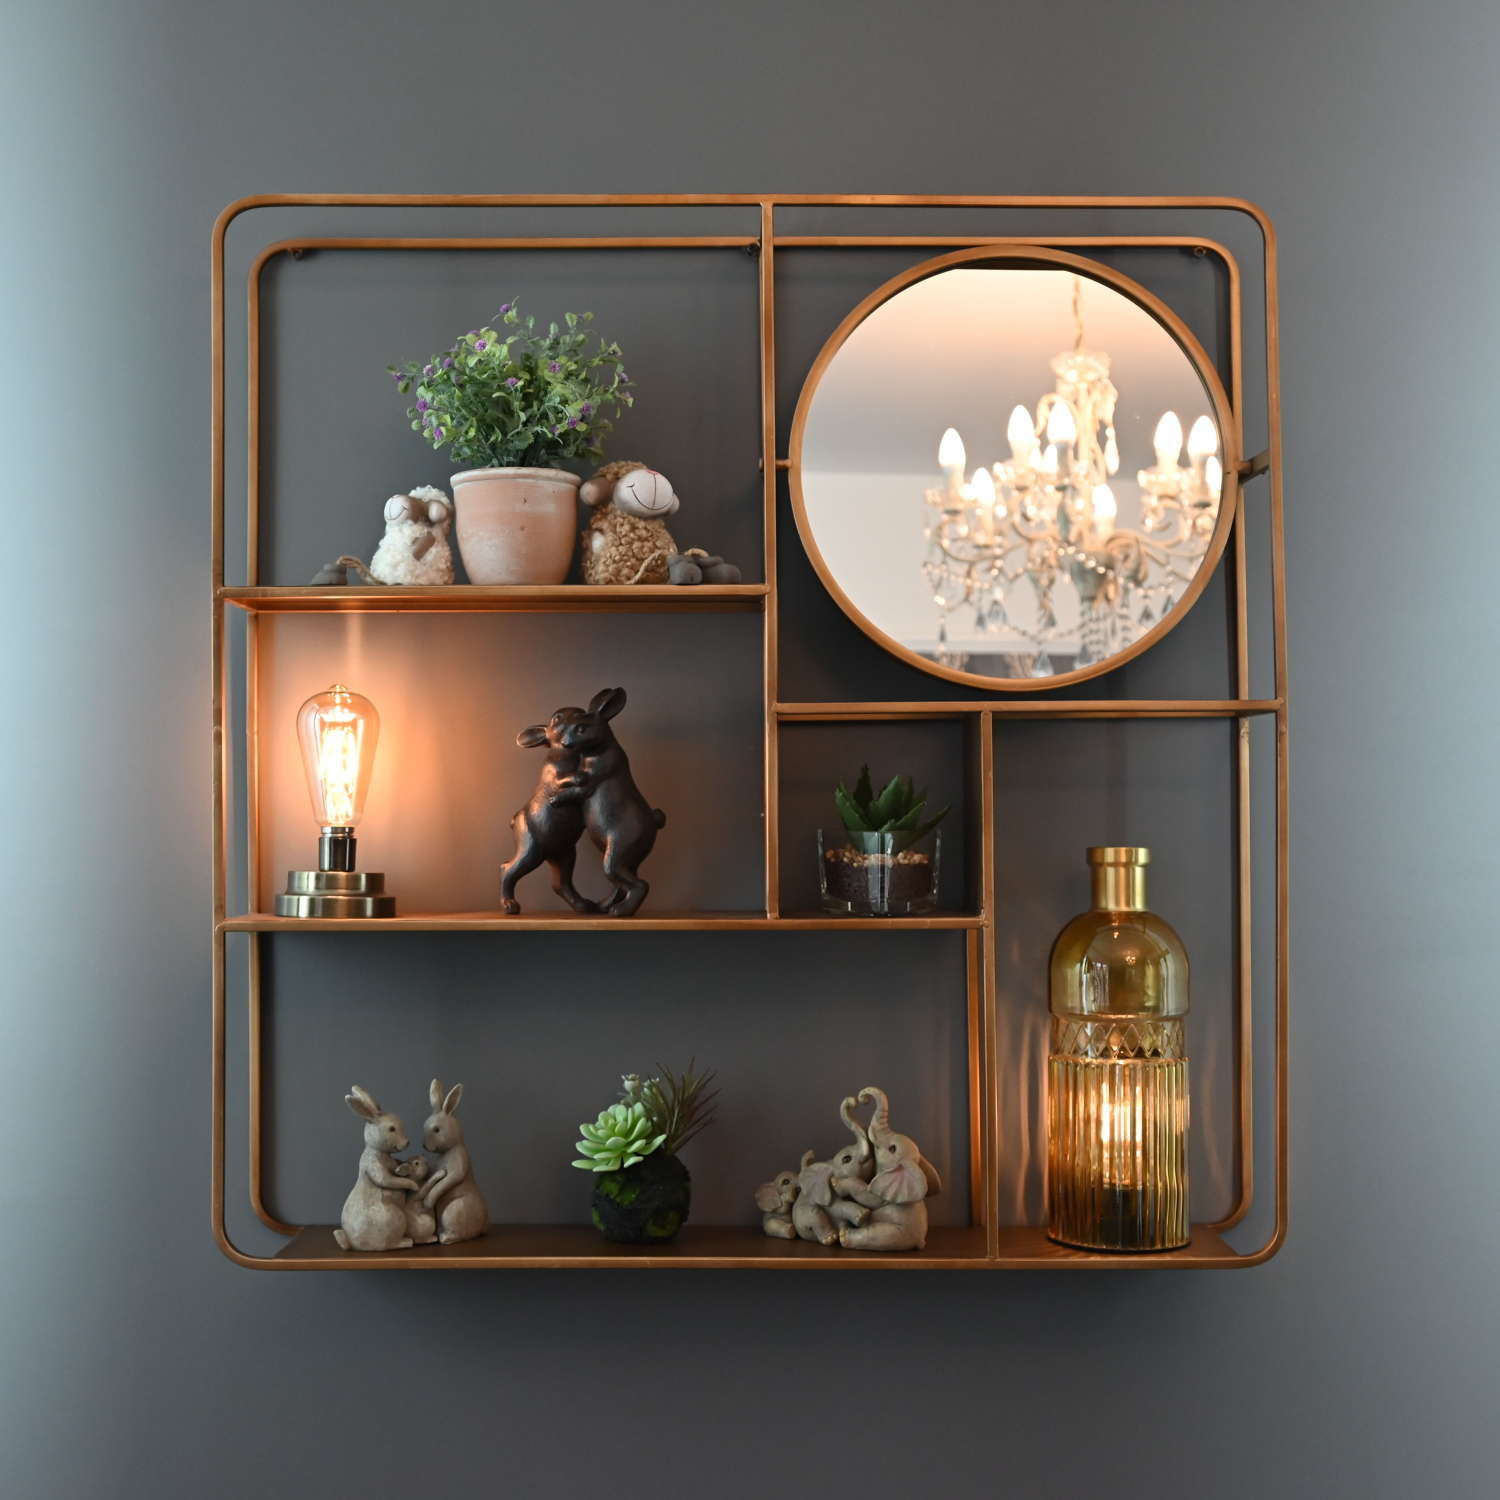 Gold metal wall shelving unit with round mirror